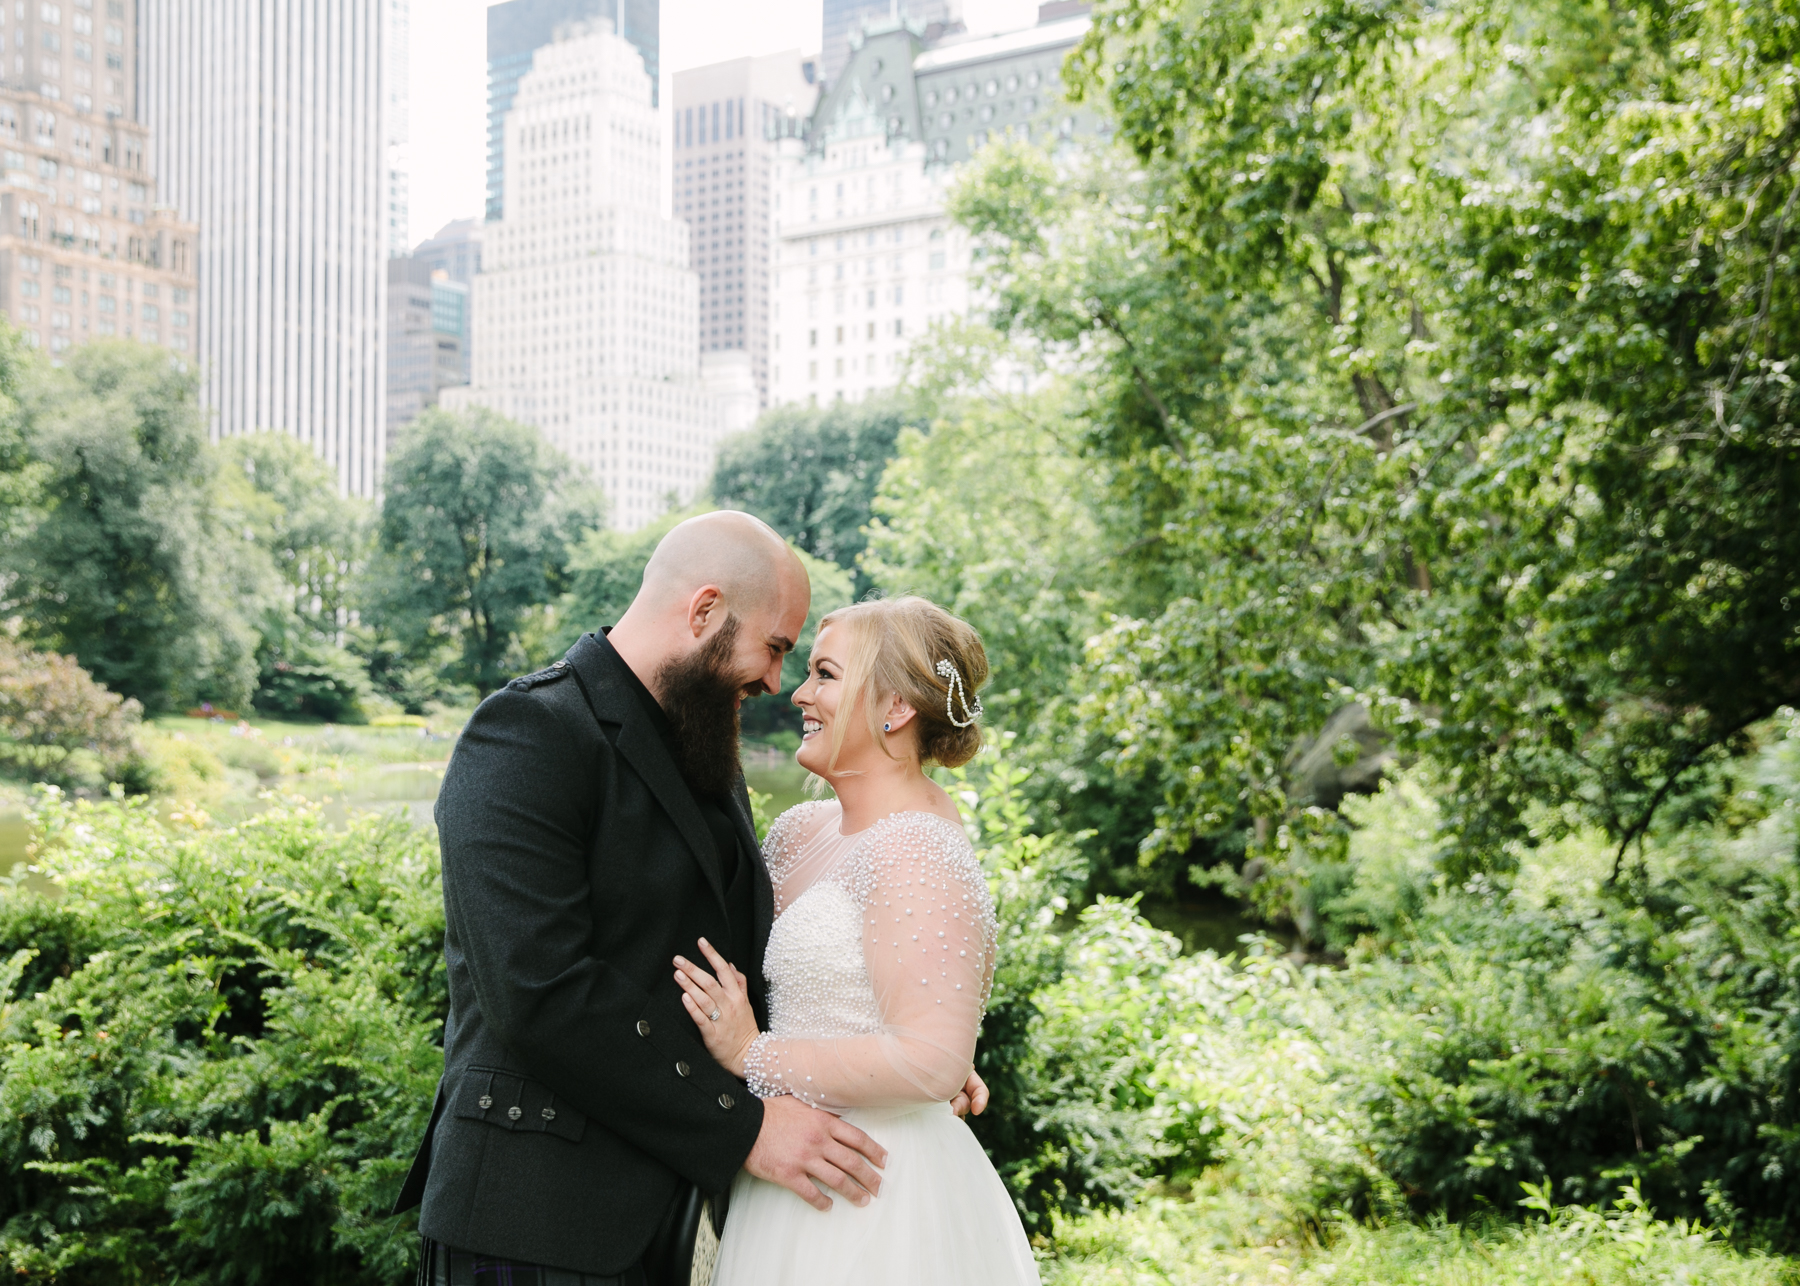 NYC-wedding-photos-by-Tanya-Isaeva-79.jpg